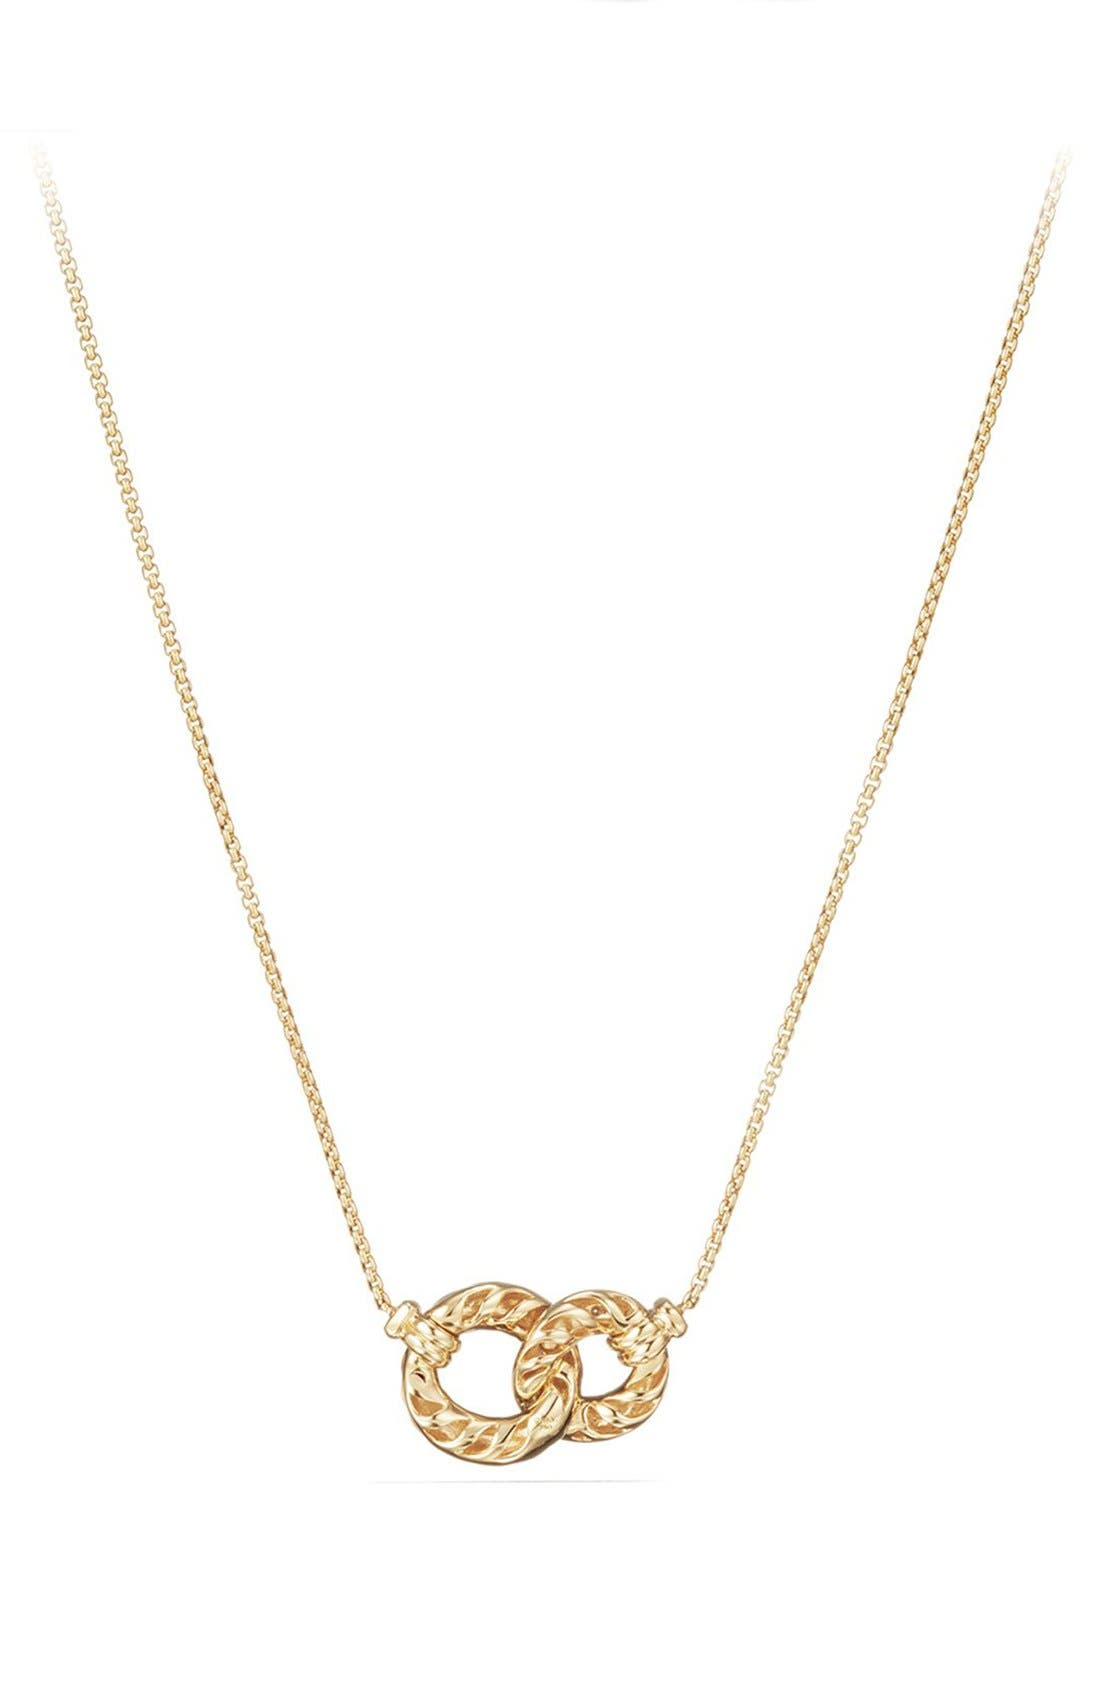 Alternate Image 1 Selected - David Yurman Belmont Extra-Small Double Curb Link Necklace with Diamonds in 18K Gold